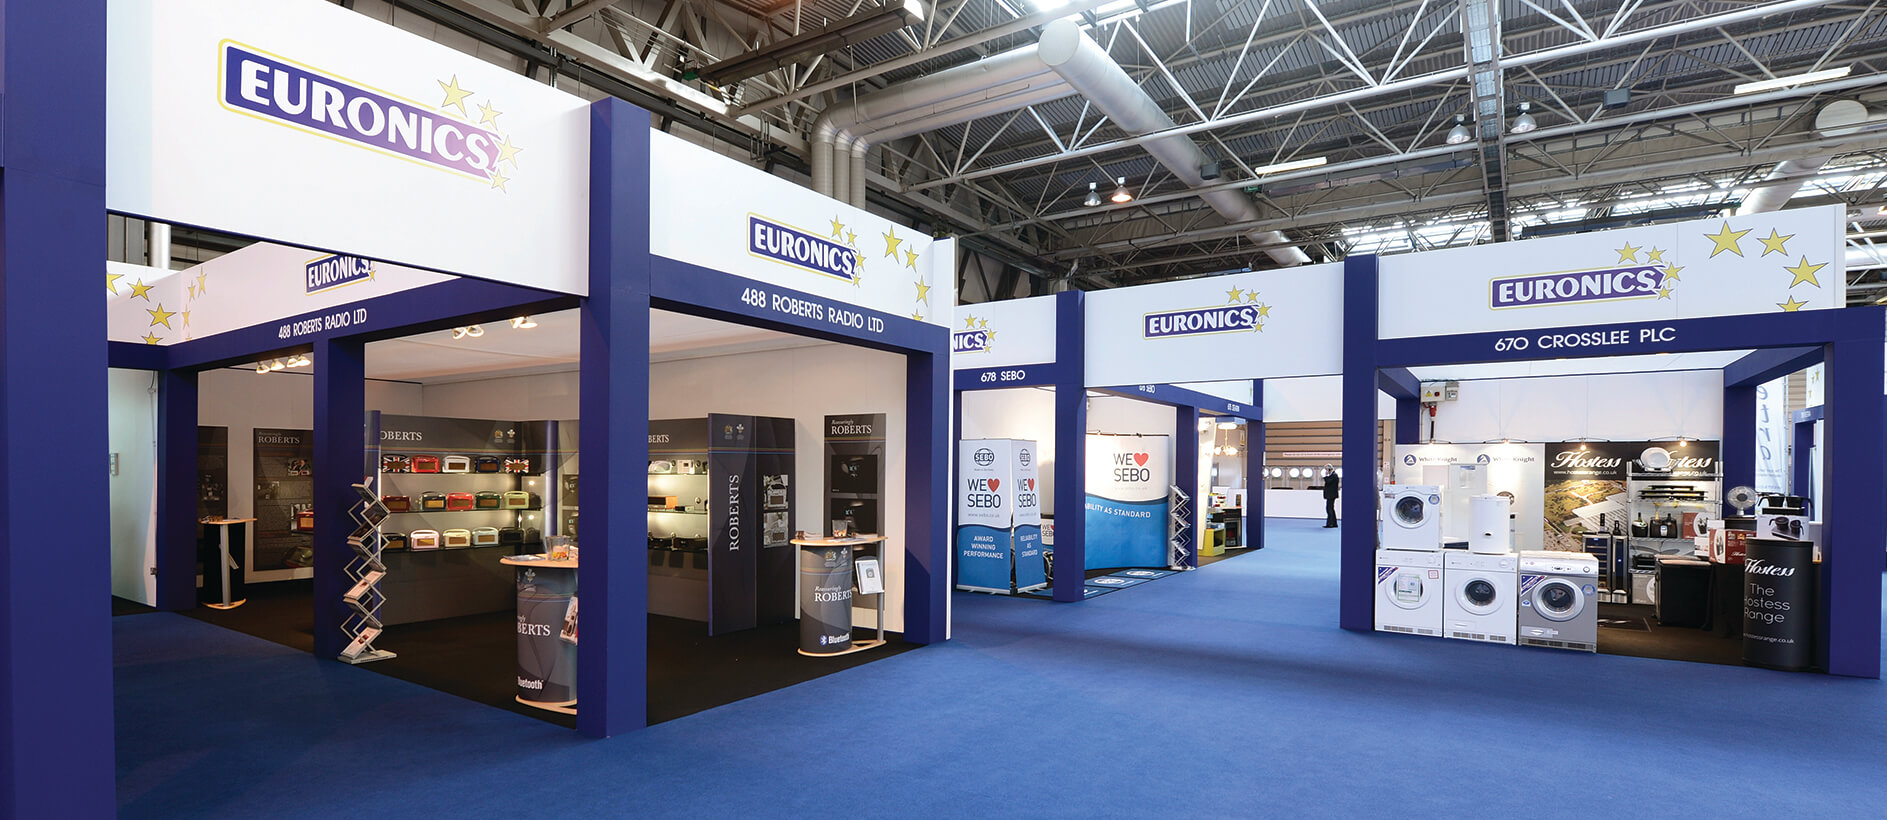 Euronics shell scheme stands